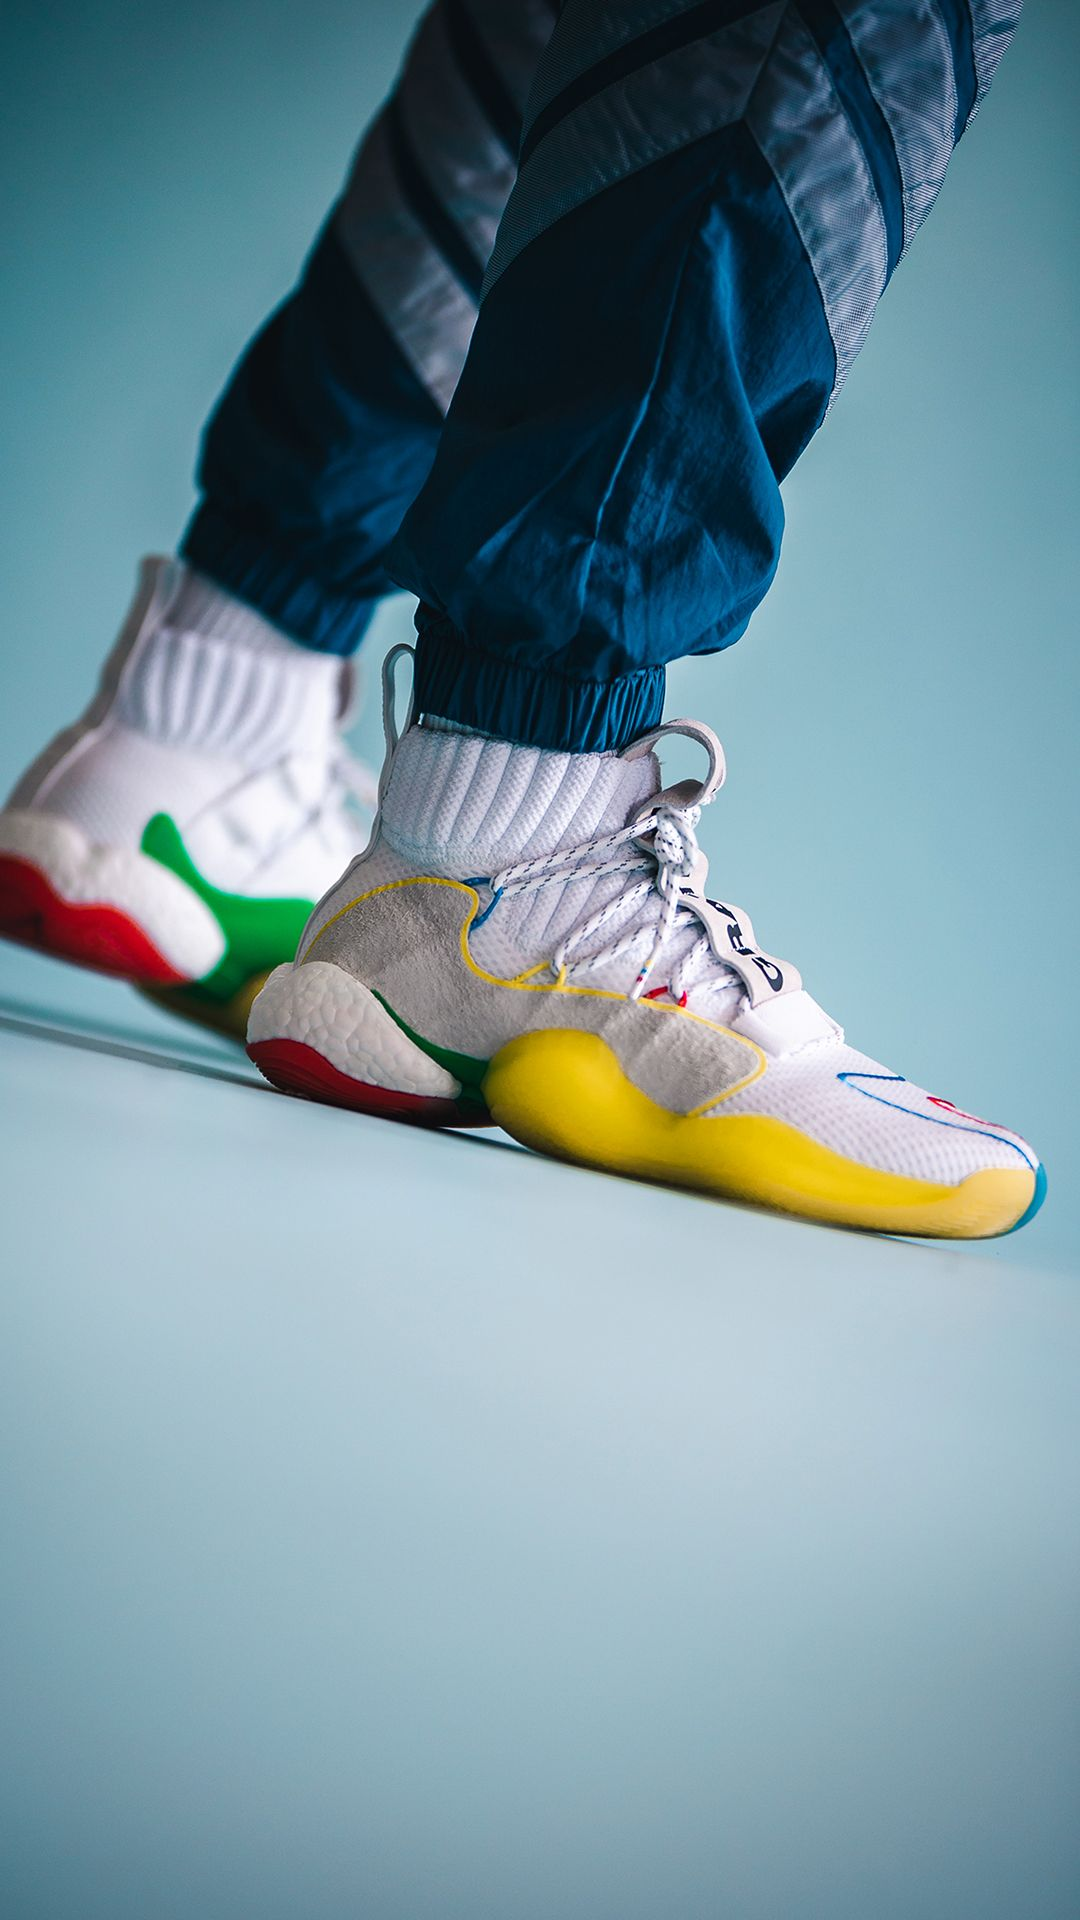 adidas Pharrell Williams Crazy Byw Lvl X Mesh Snea Herren